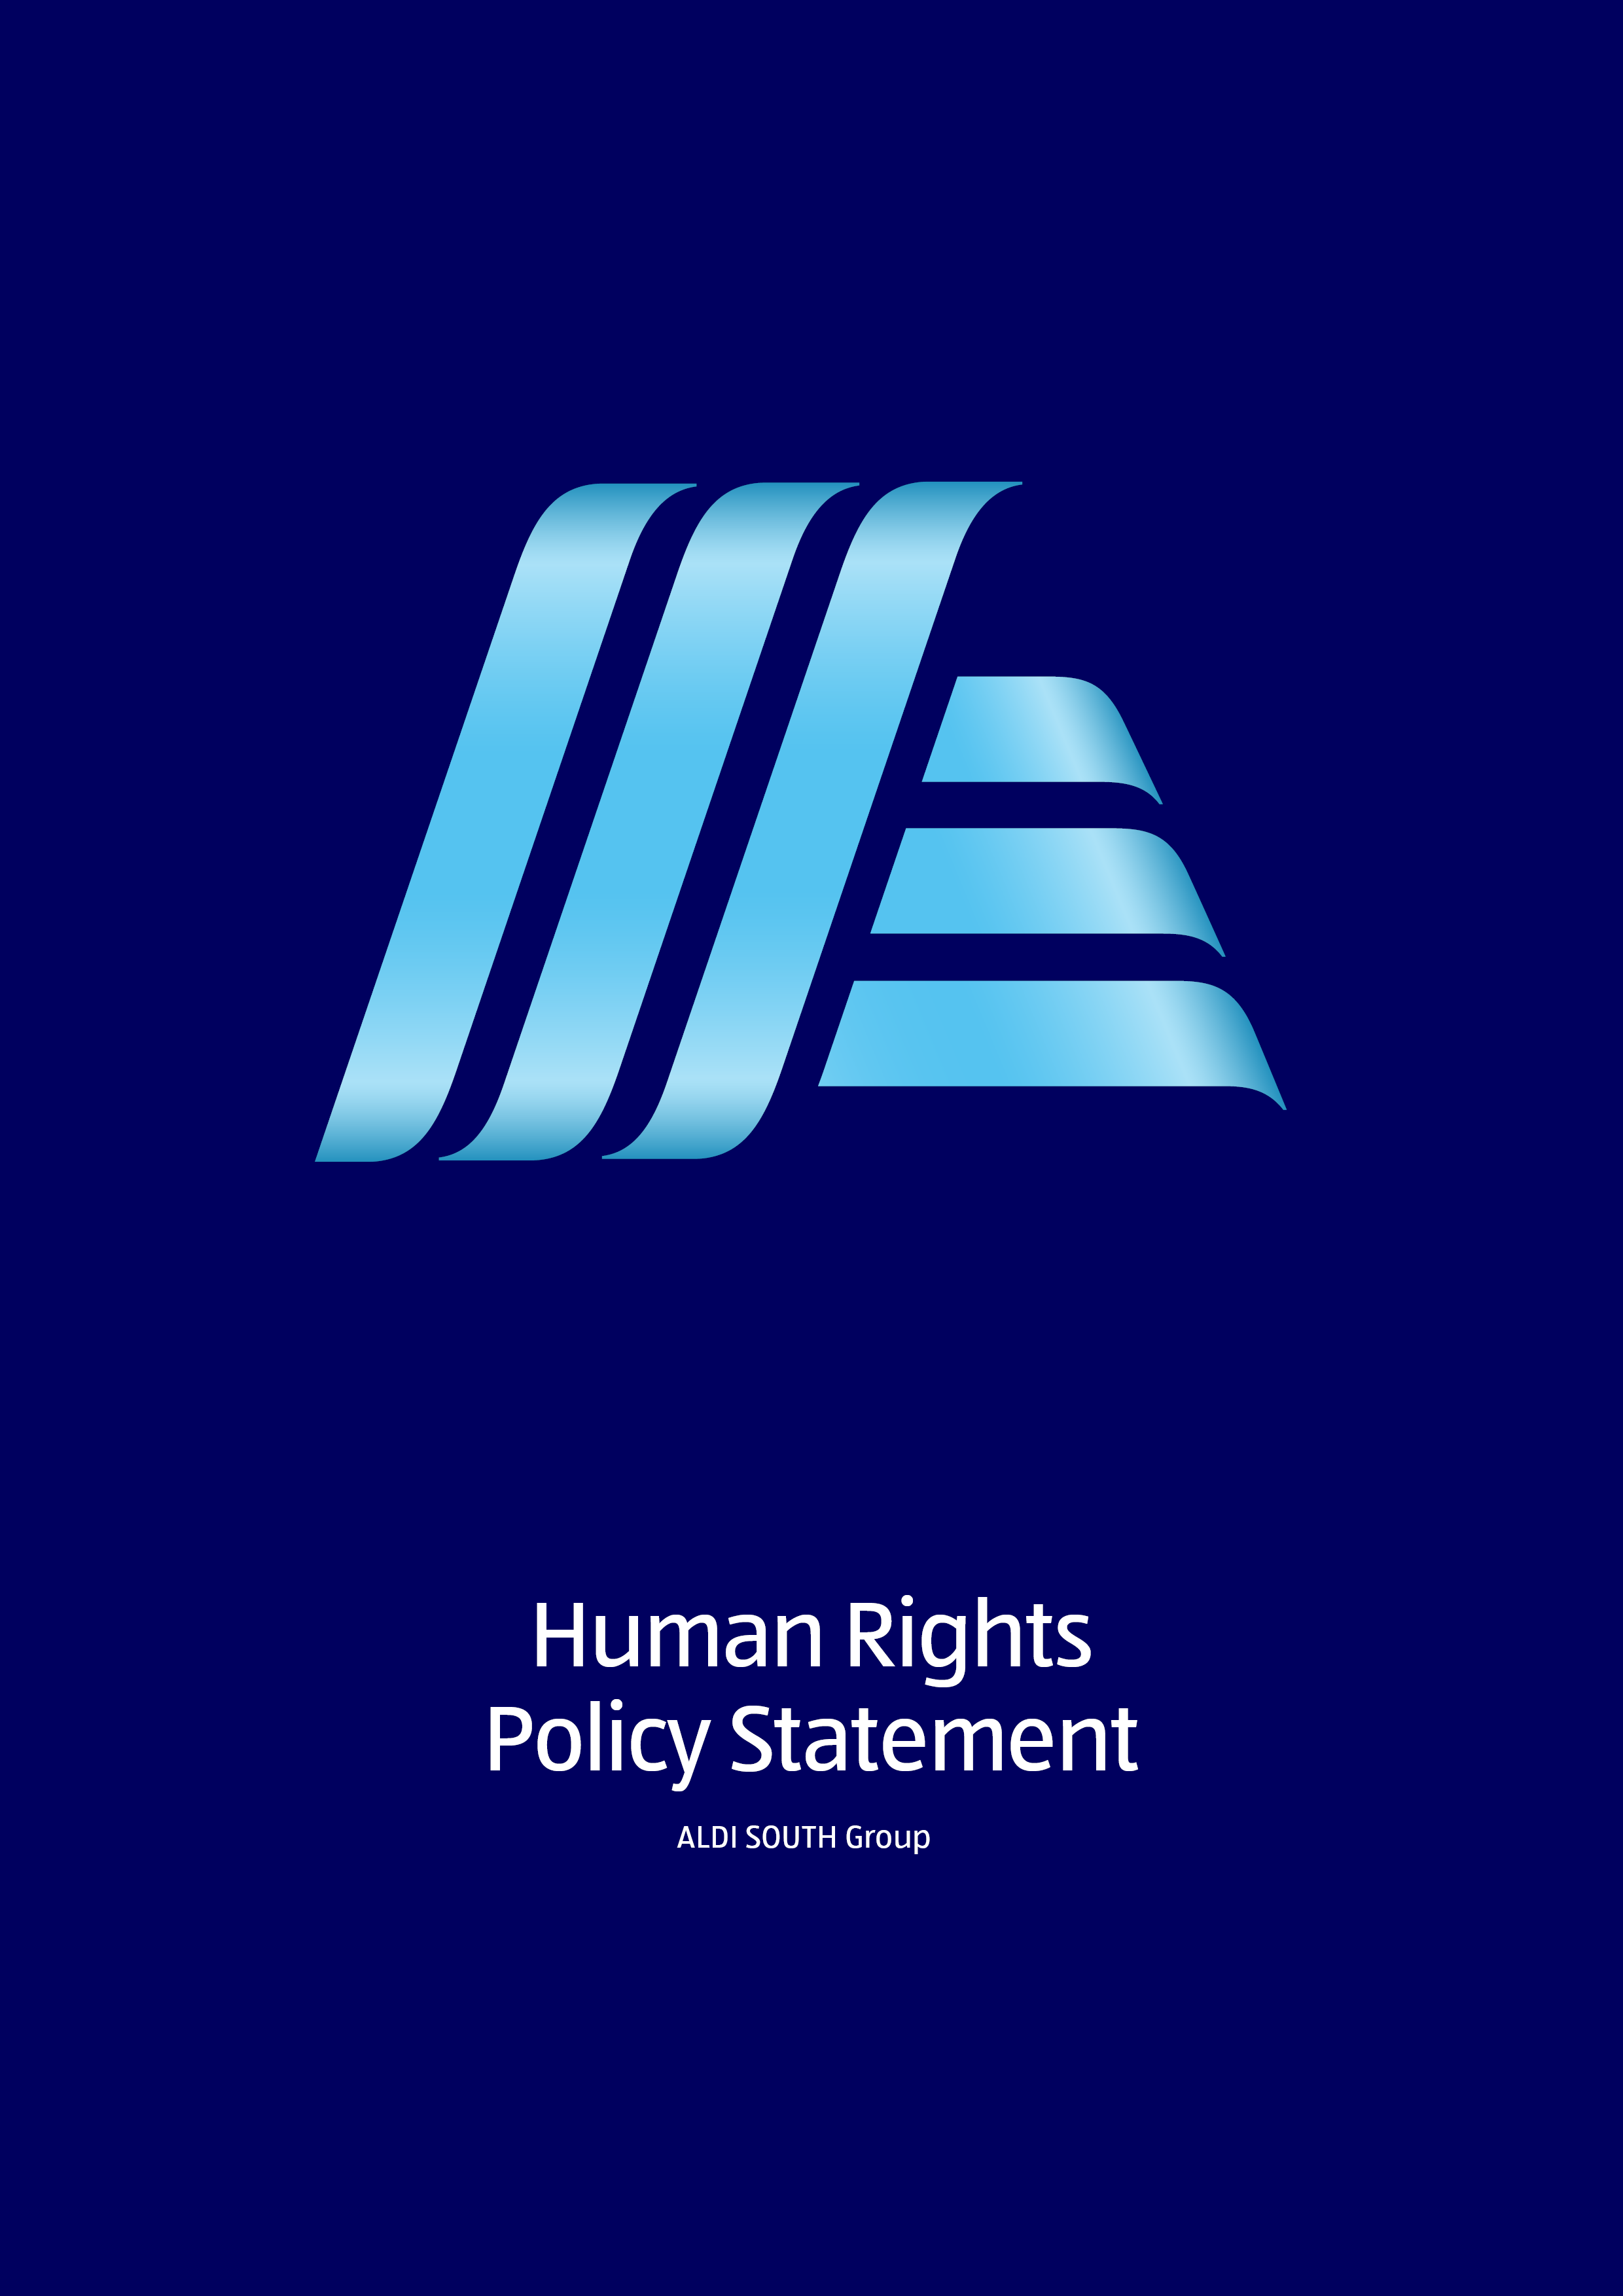 Human Rights Policy Statement